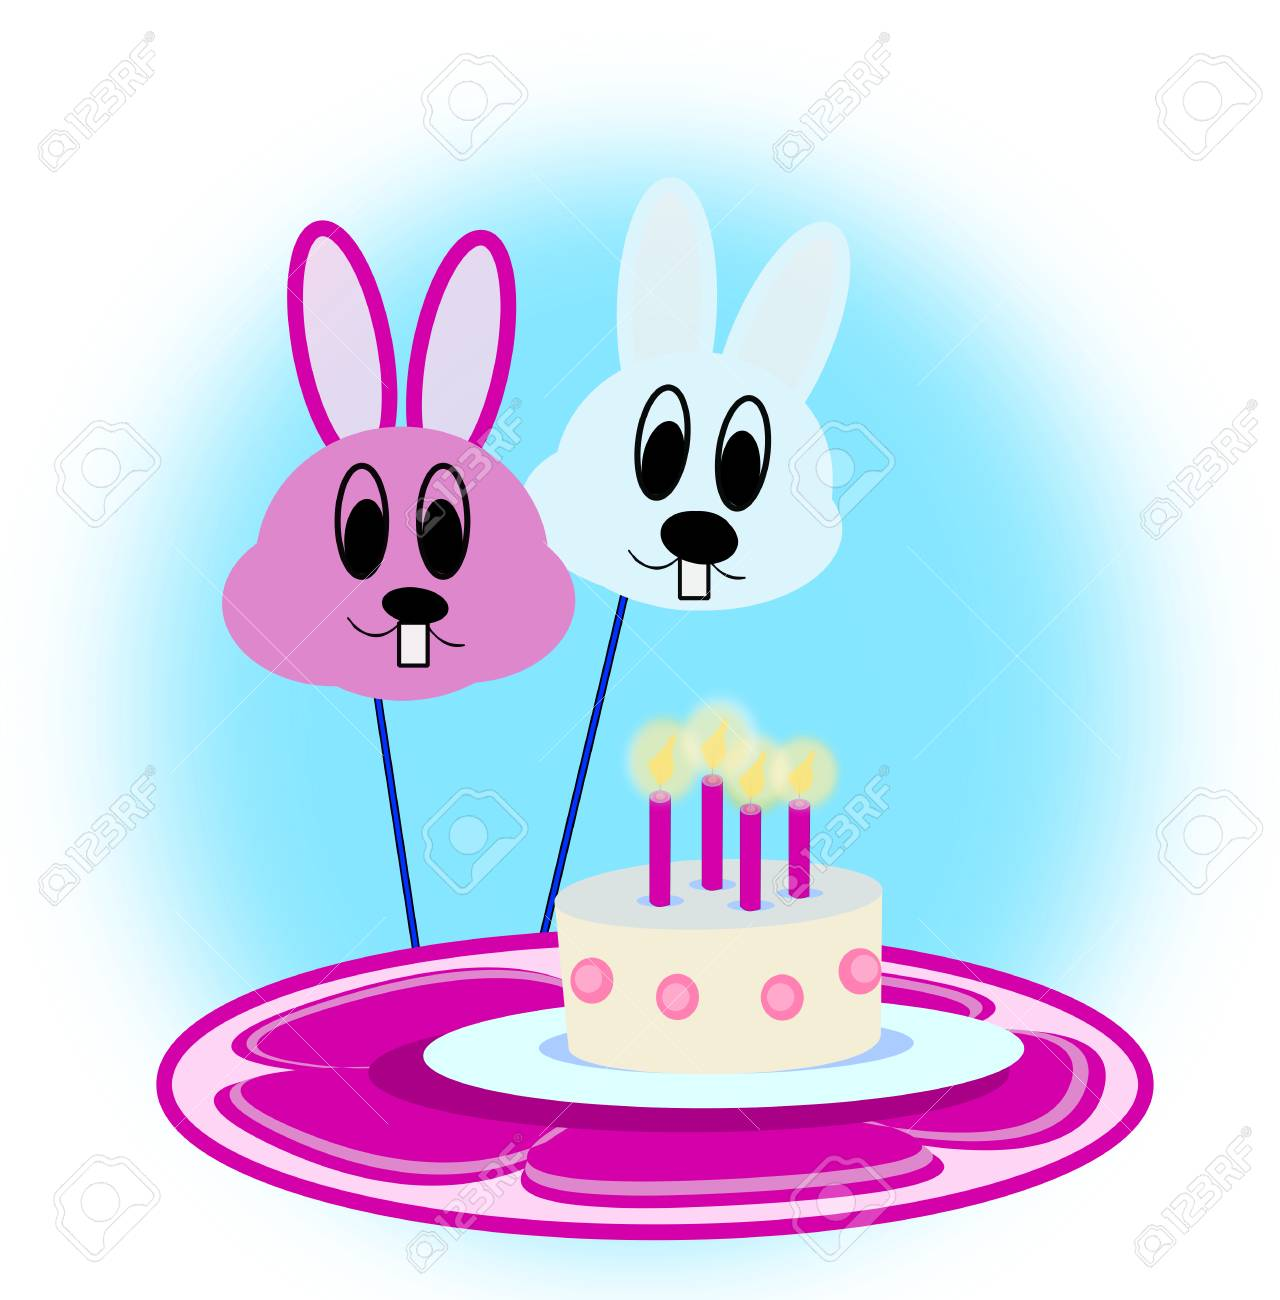 Two Balloons Looking Like Rabbits And A Birthday Cake Stock Photo